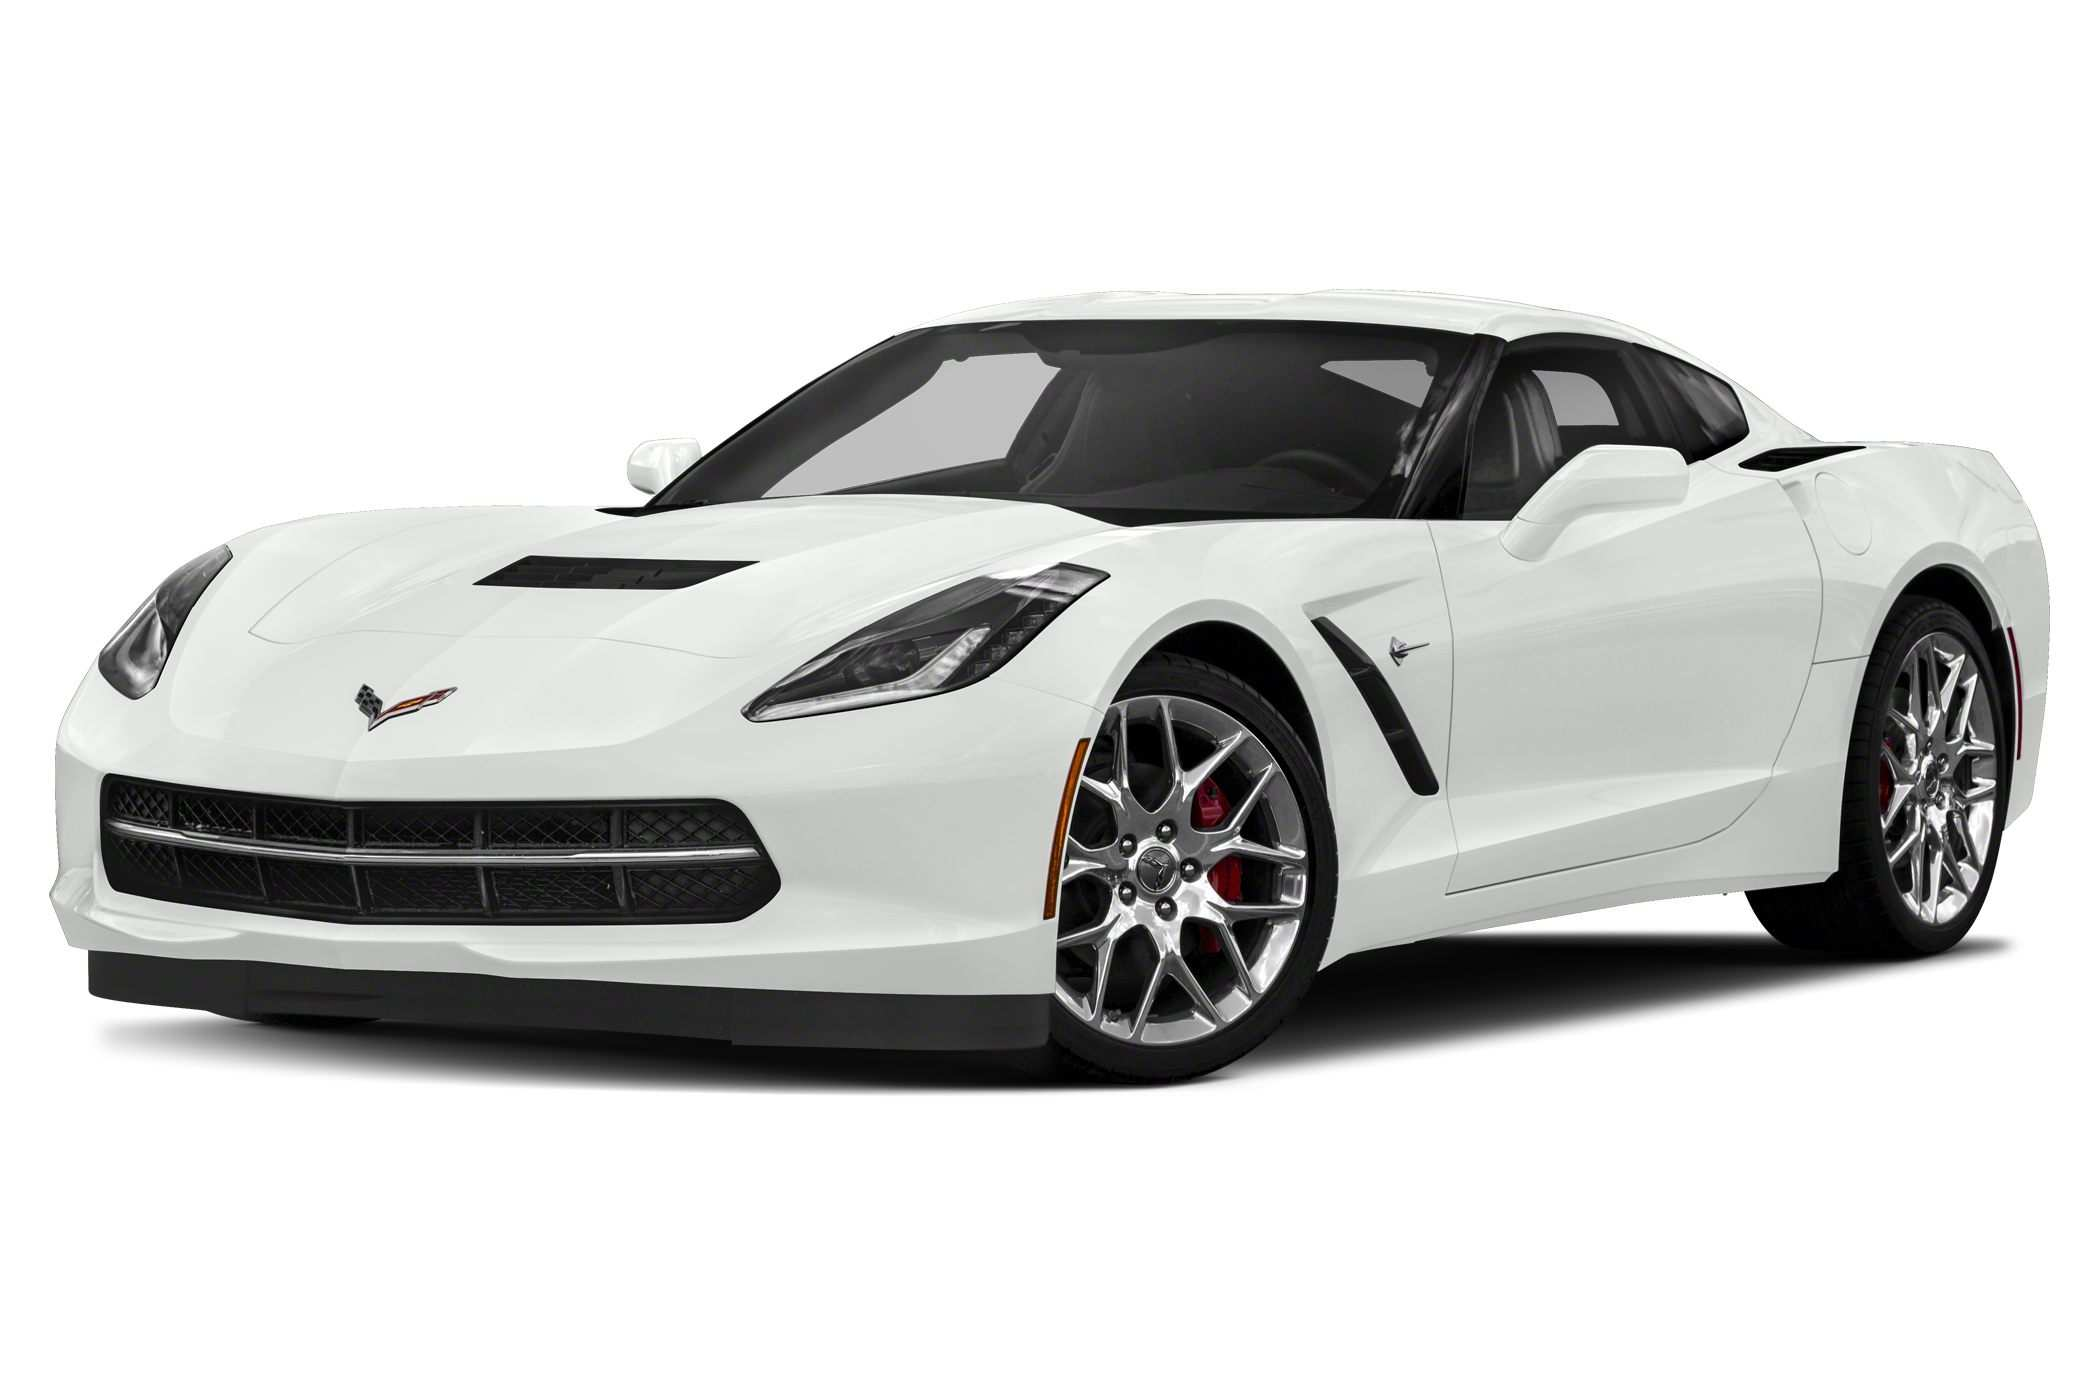 76 All New 2019 Chevrolet Corvette Price Engine